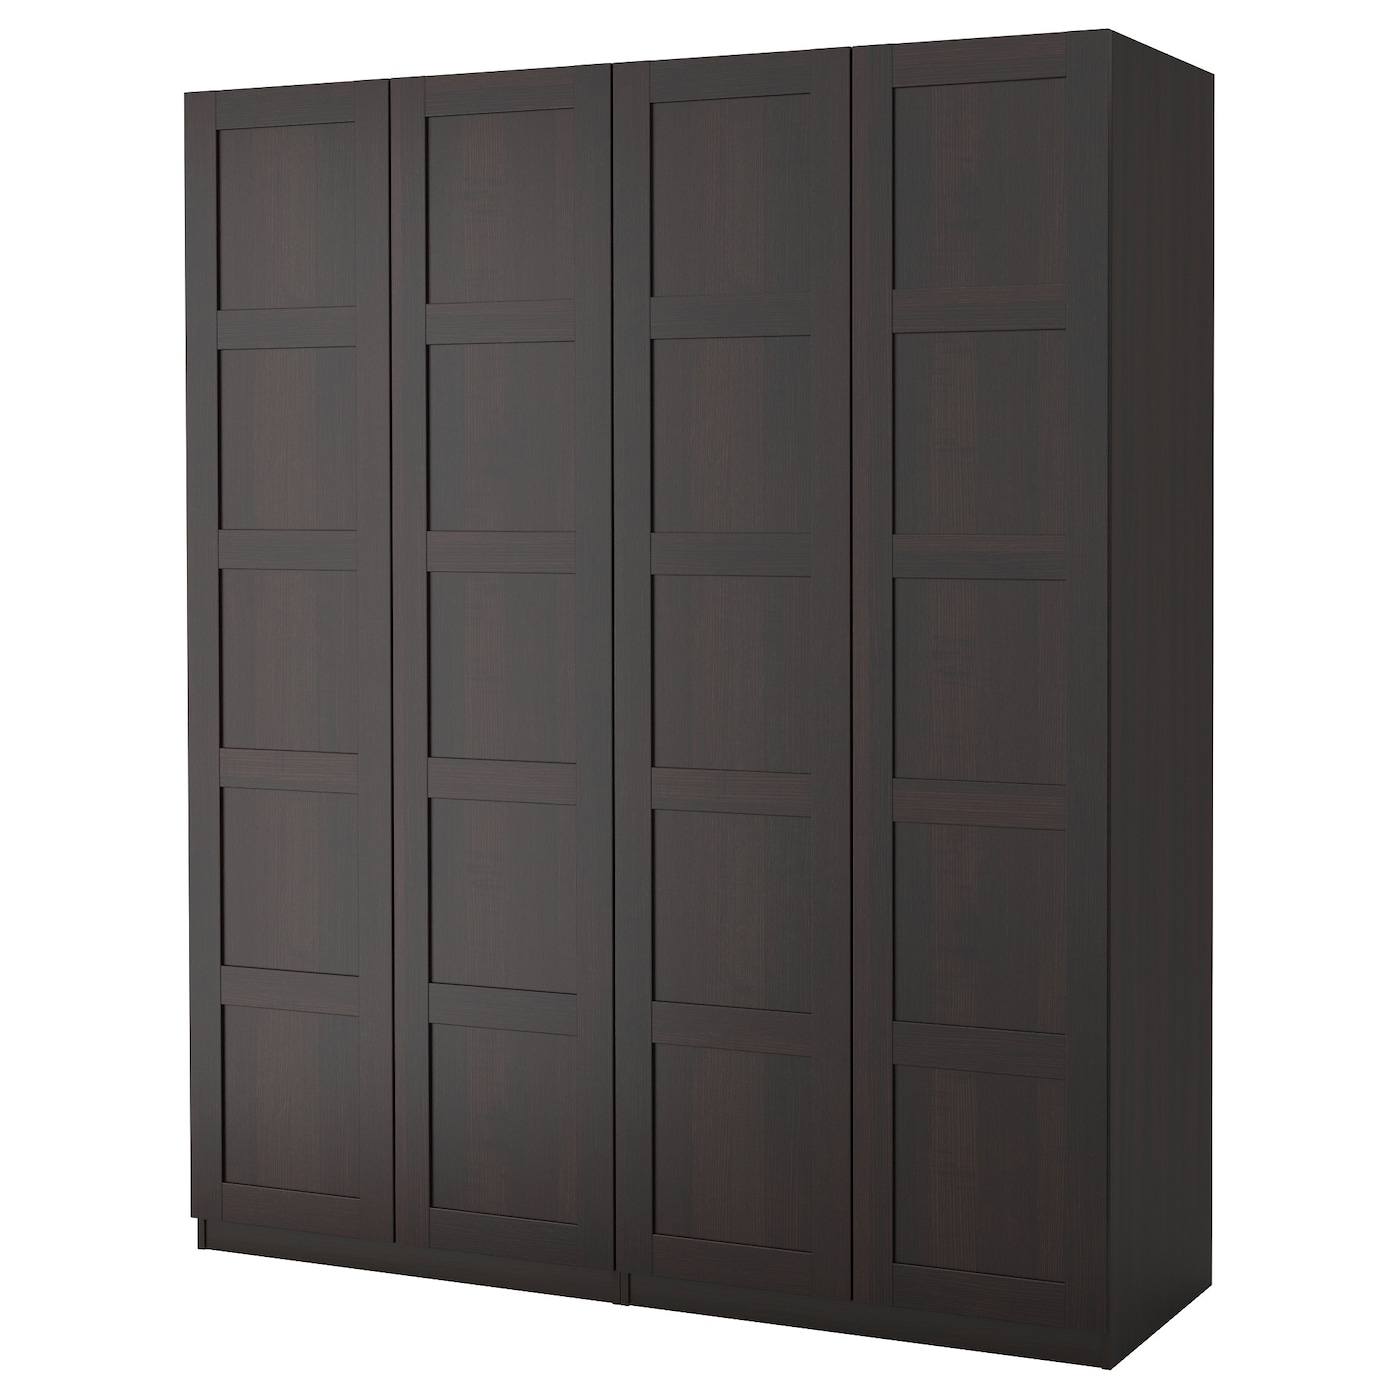 pax wardrobe black brown bergsbo black brown 200x60x236 cm ikea. Black Bedroom Furniture Sets. Home Design Ideas